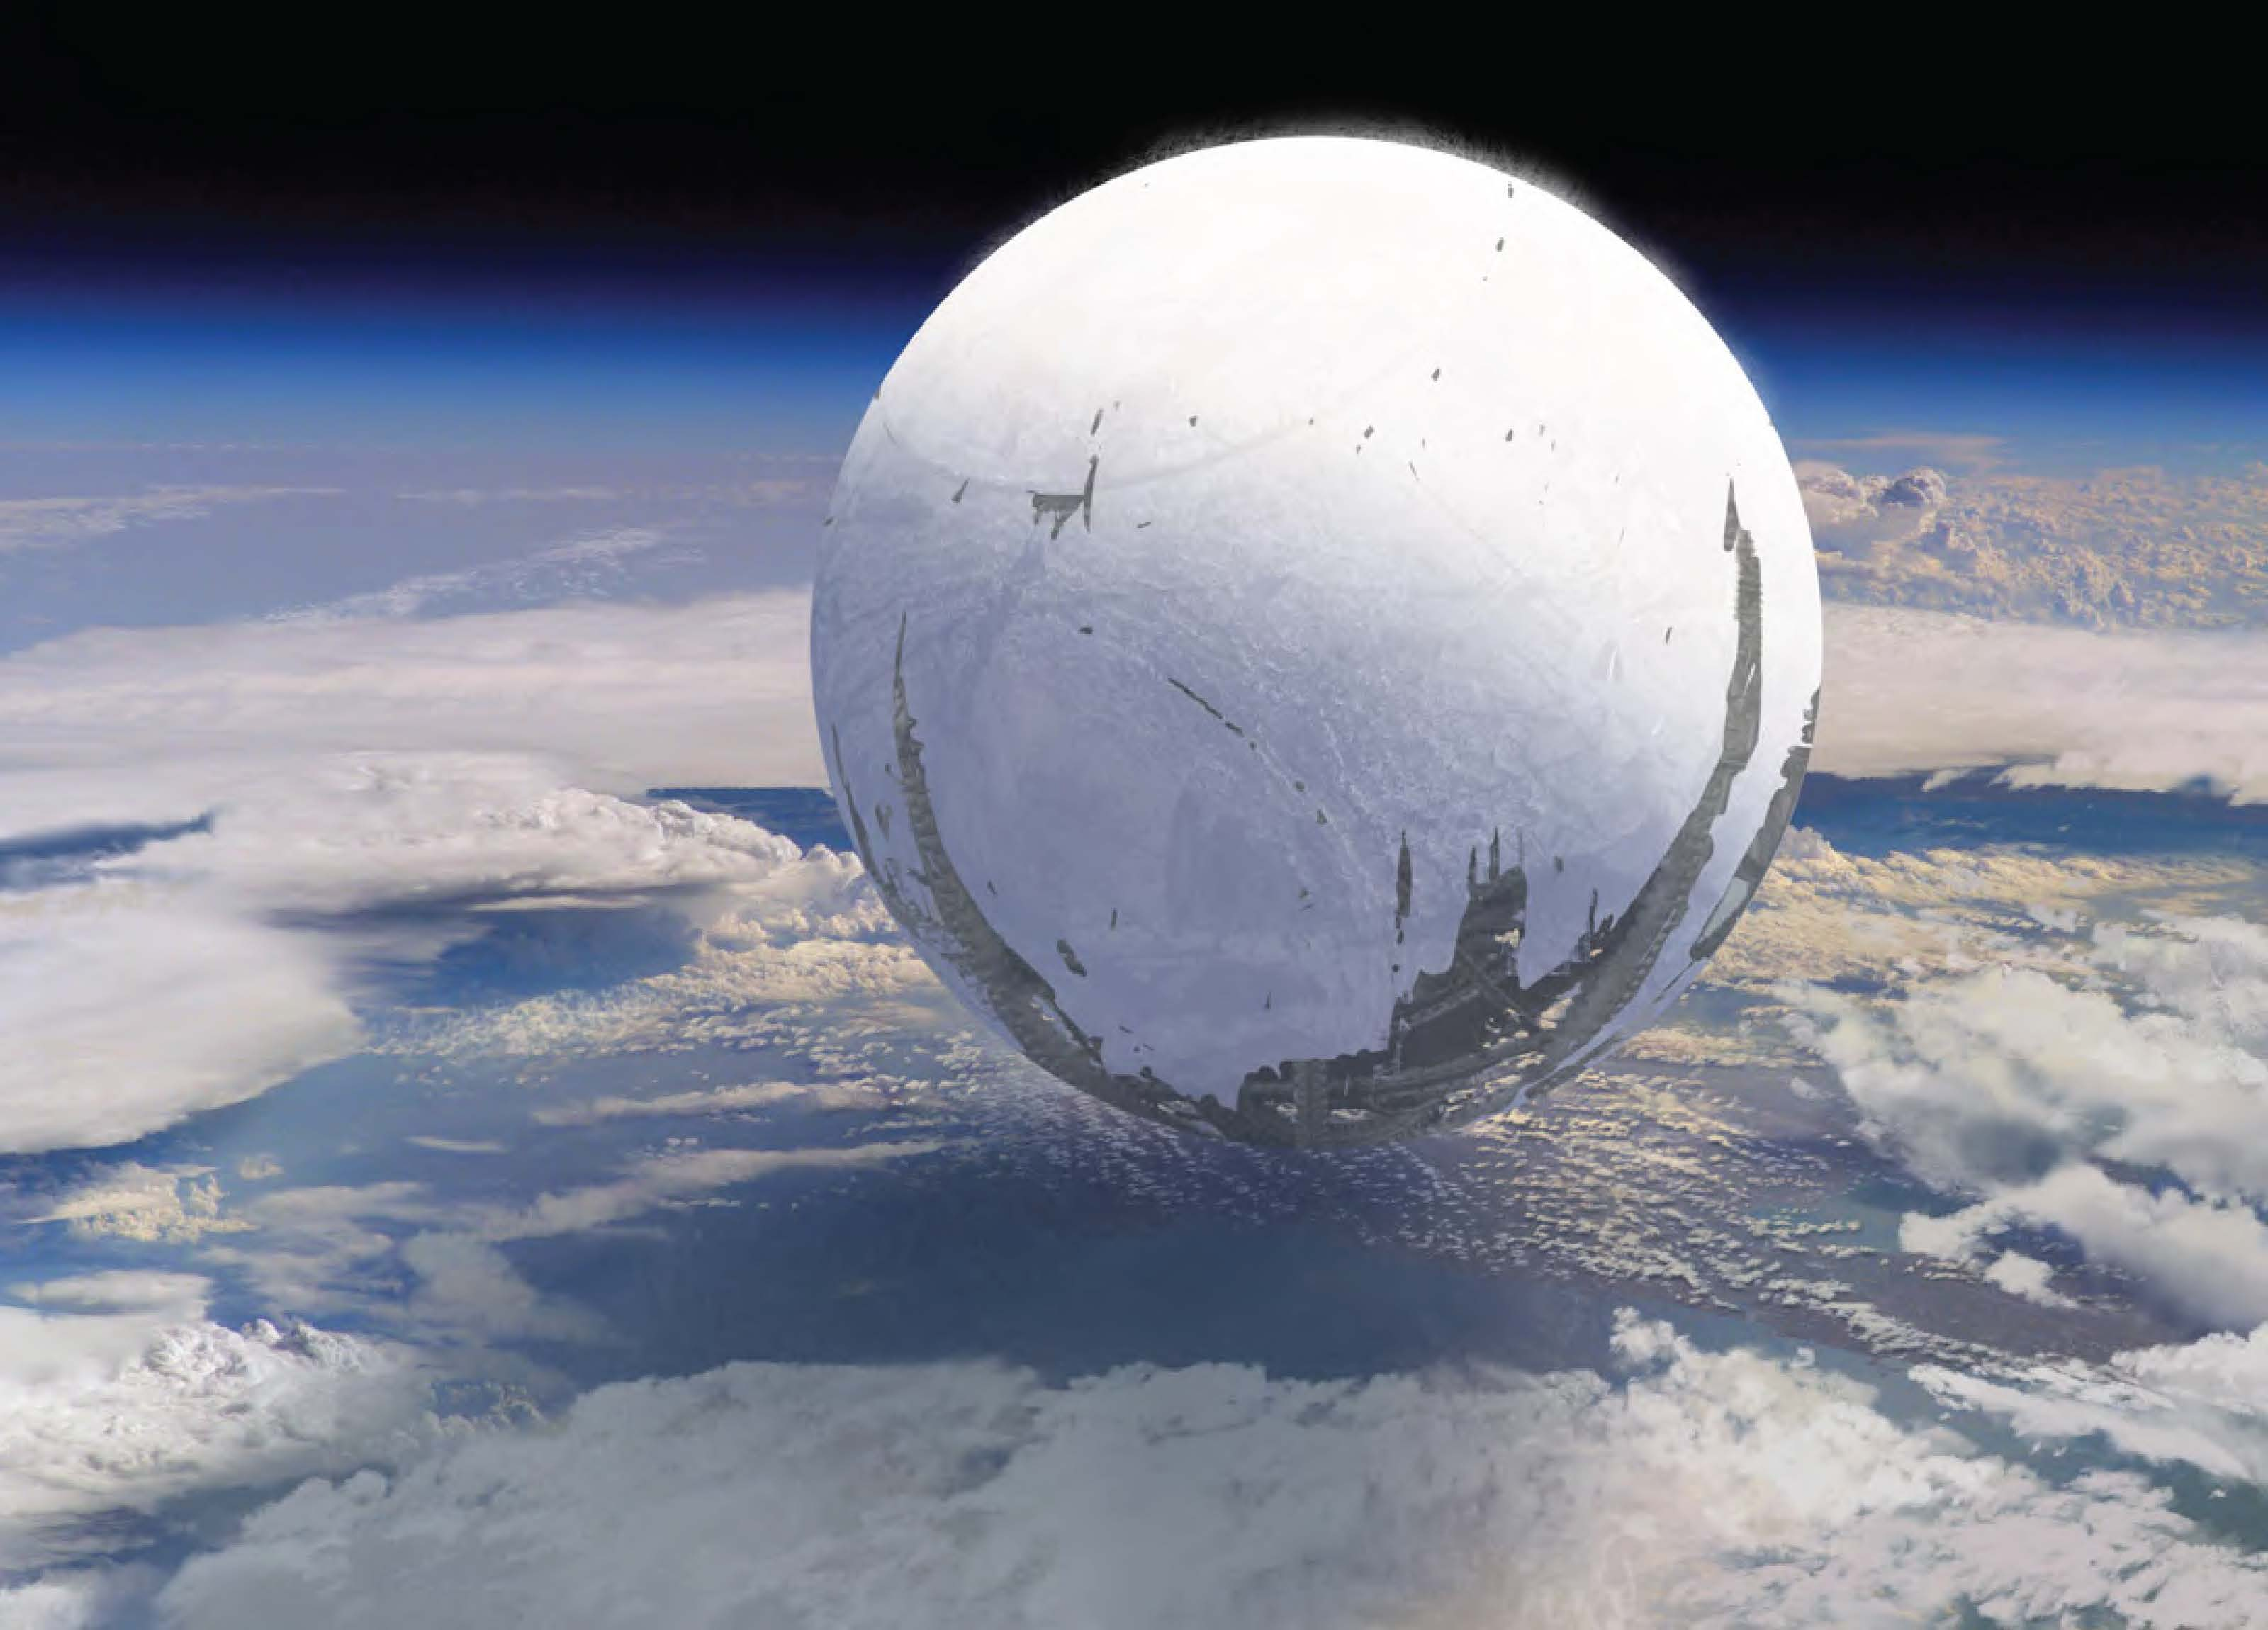 Concept art for Bungie's Halo 4 follow up called Destiny